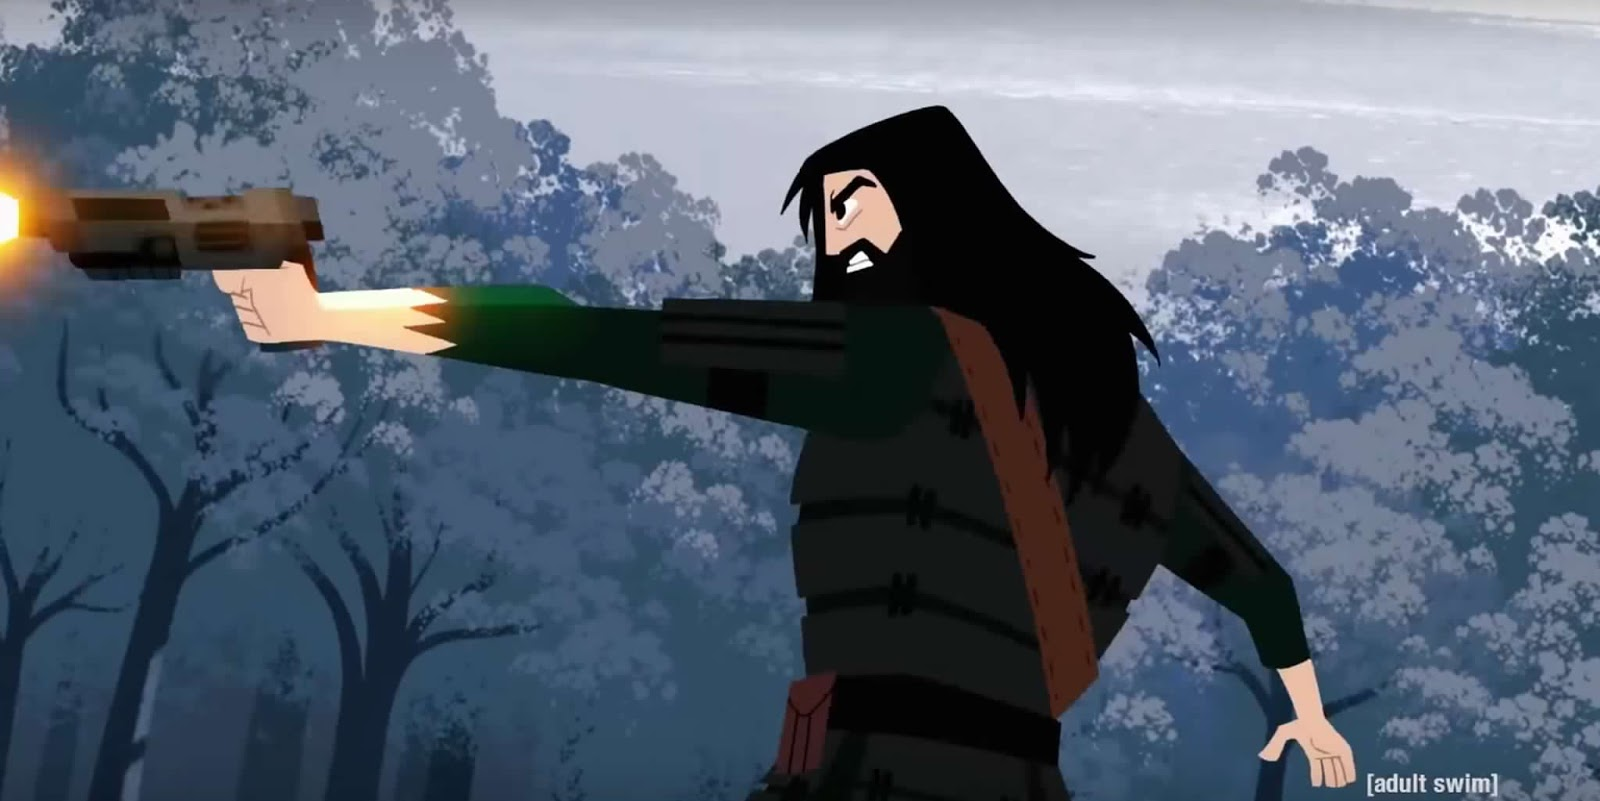 Samurai Jack New Promo Clip Fills Us In On What Happened Since We Last Saw Jack 13years Ago!